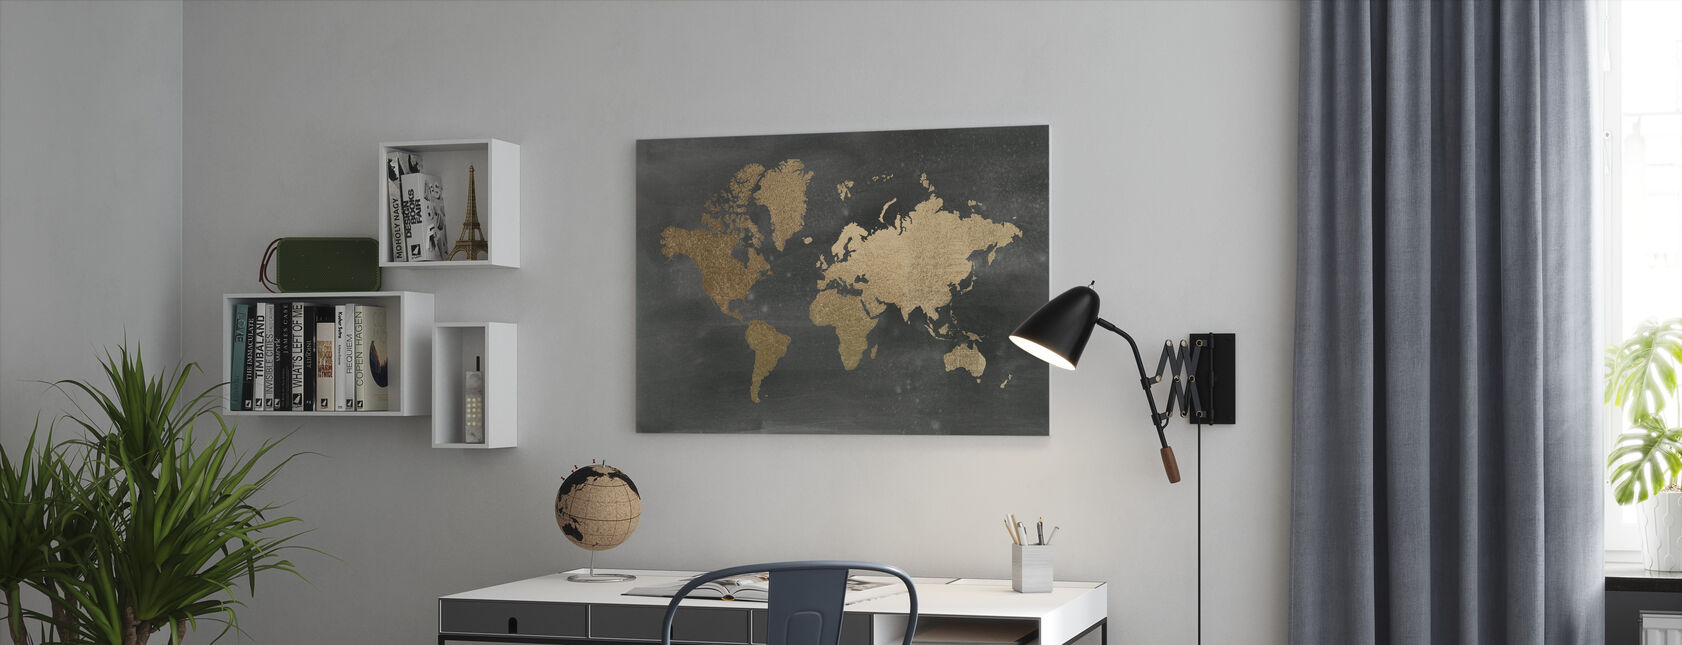 World Map on Black Wash - Canvas print - Office